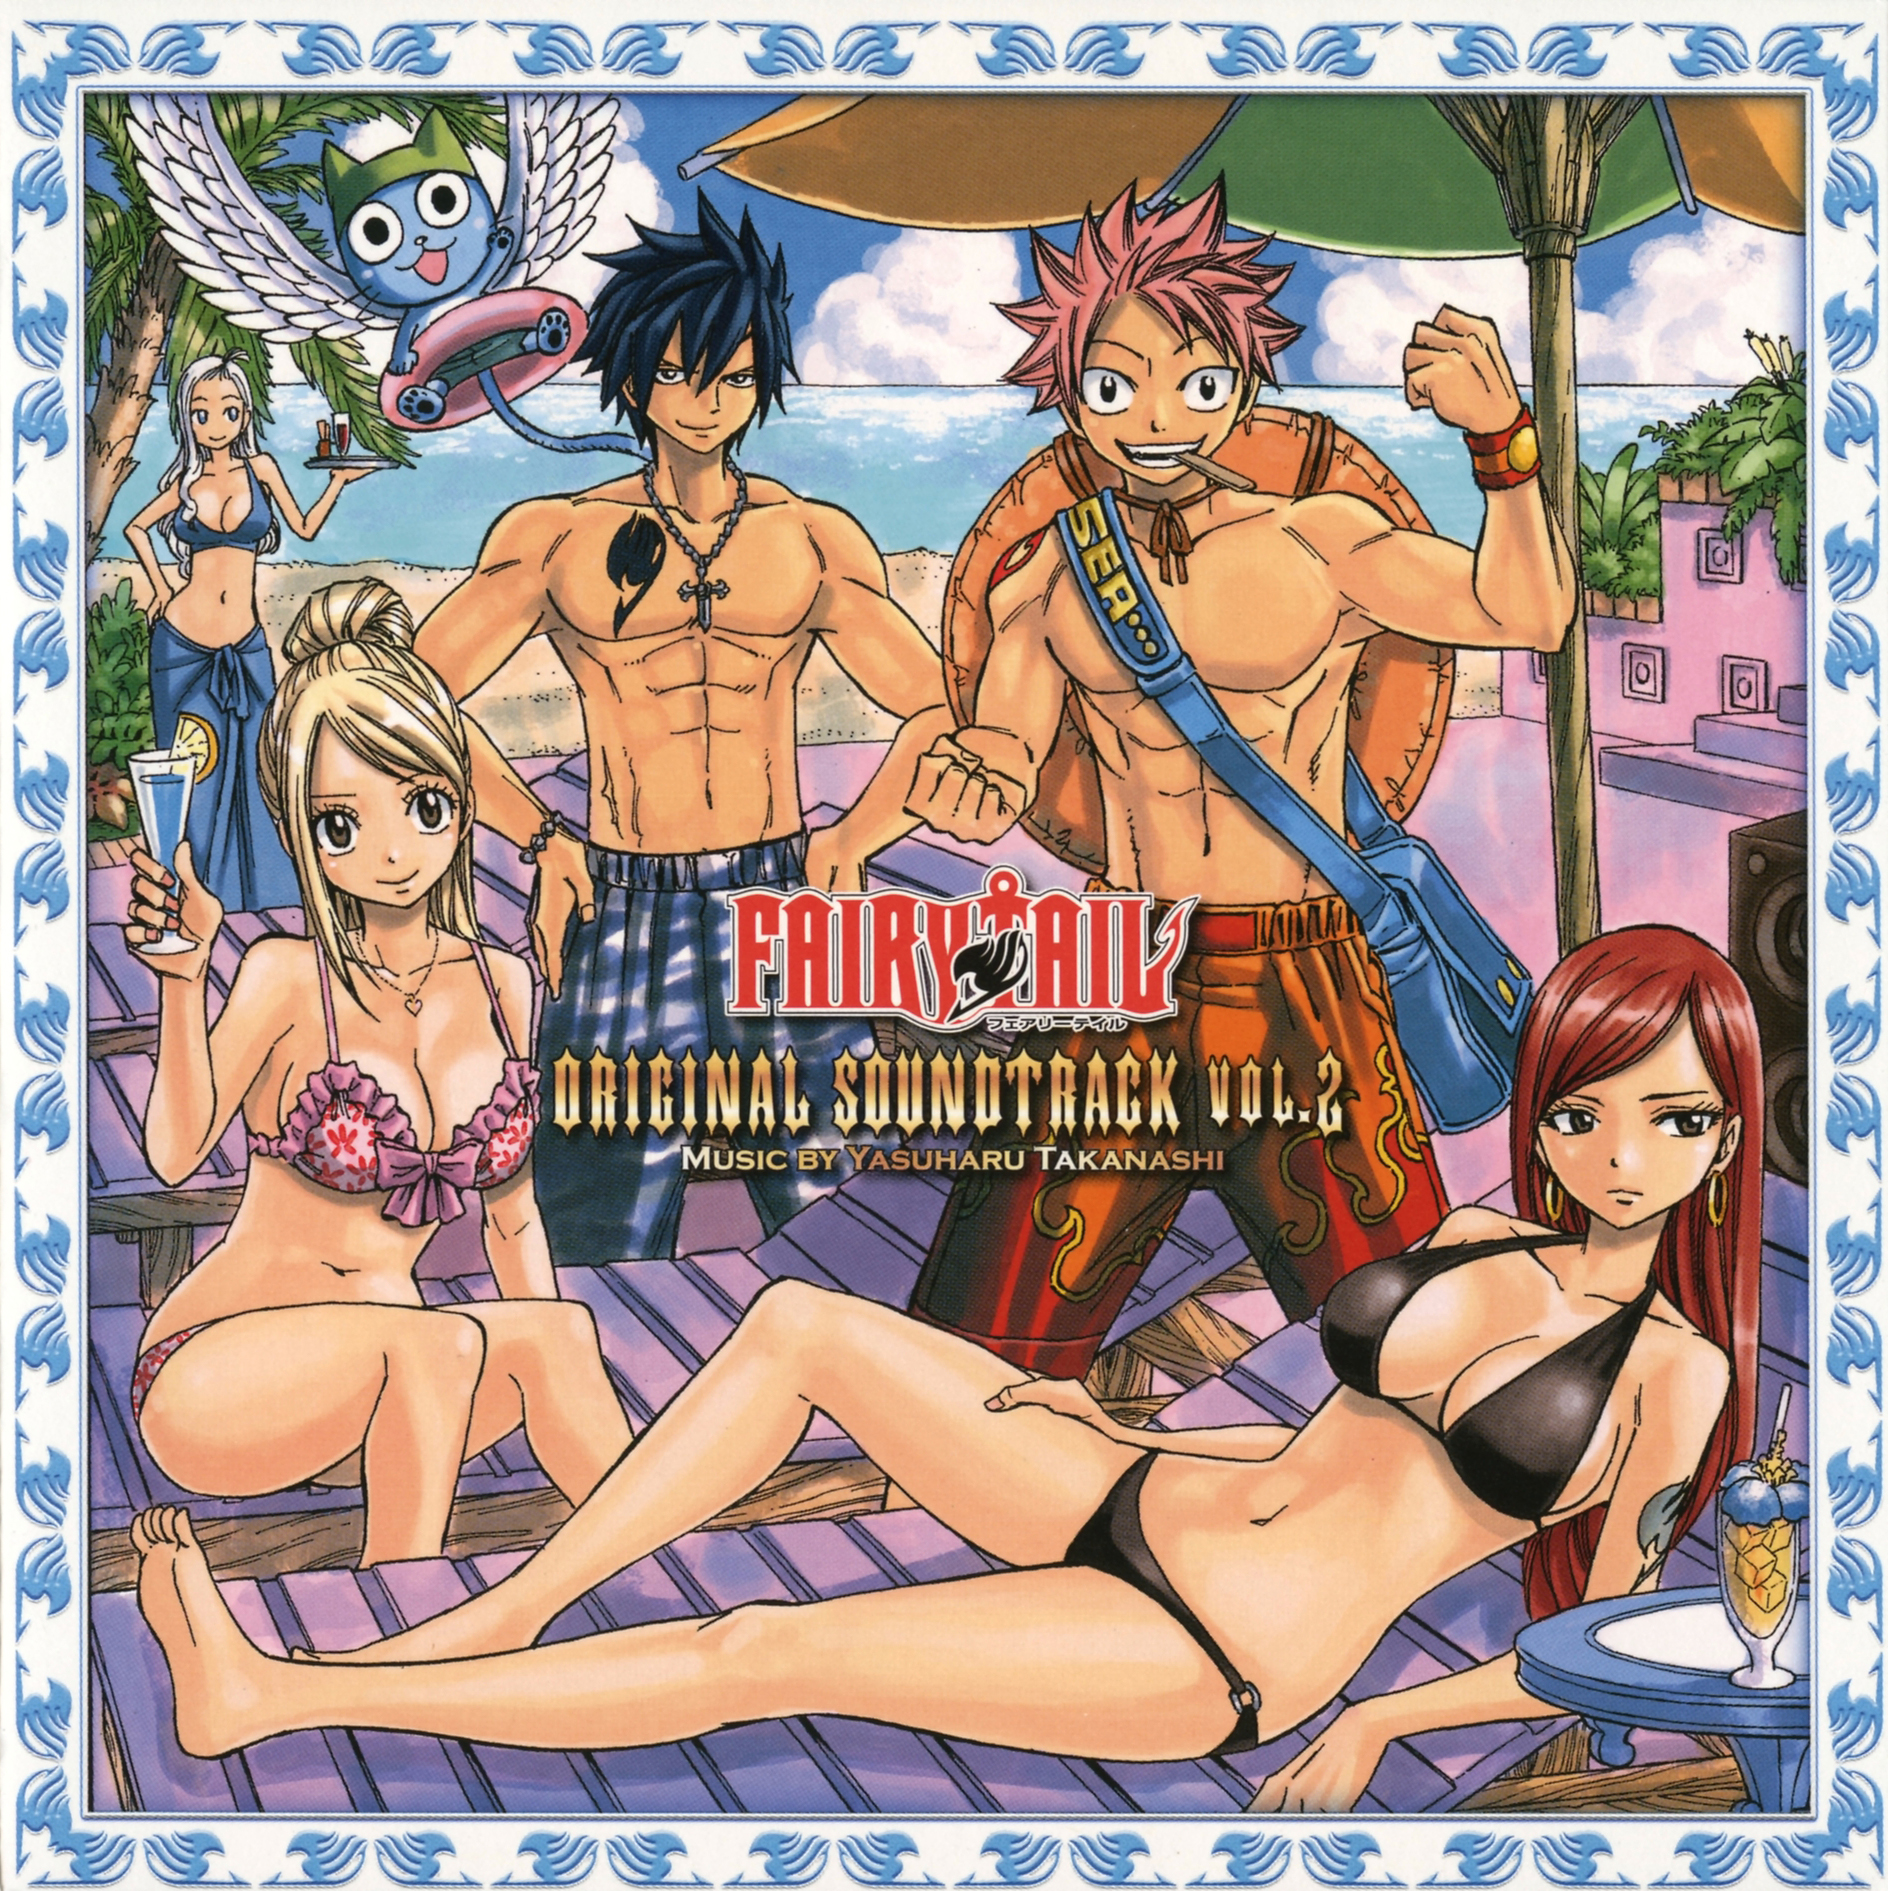 Fairy Tail Original Soundtrack Vol. 2 - Fairy Tail Wiki, the site for